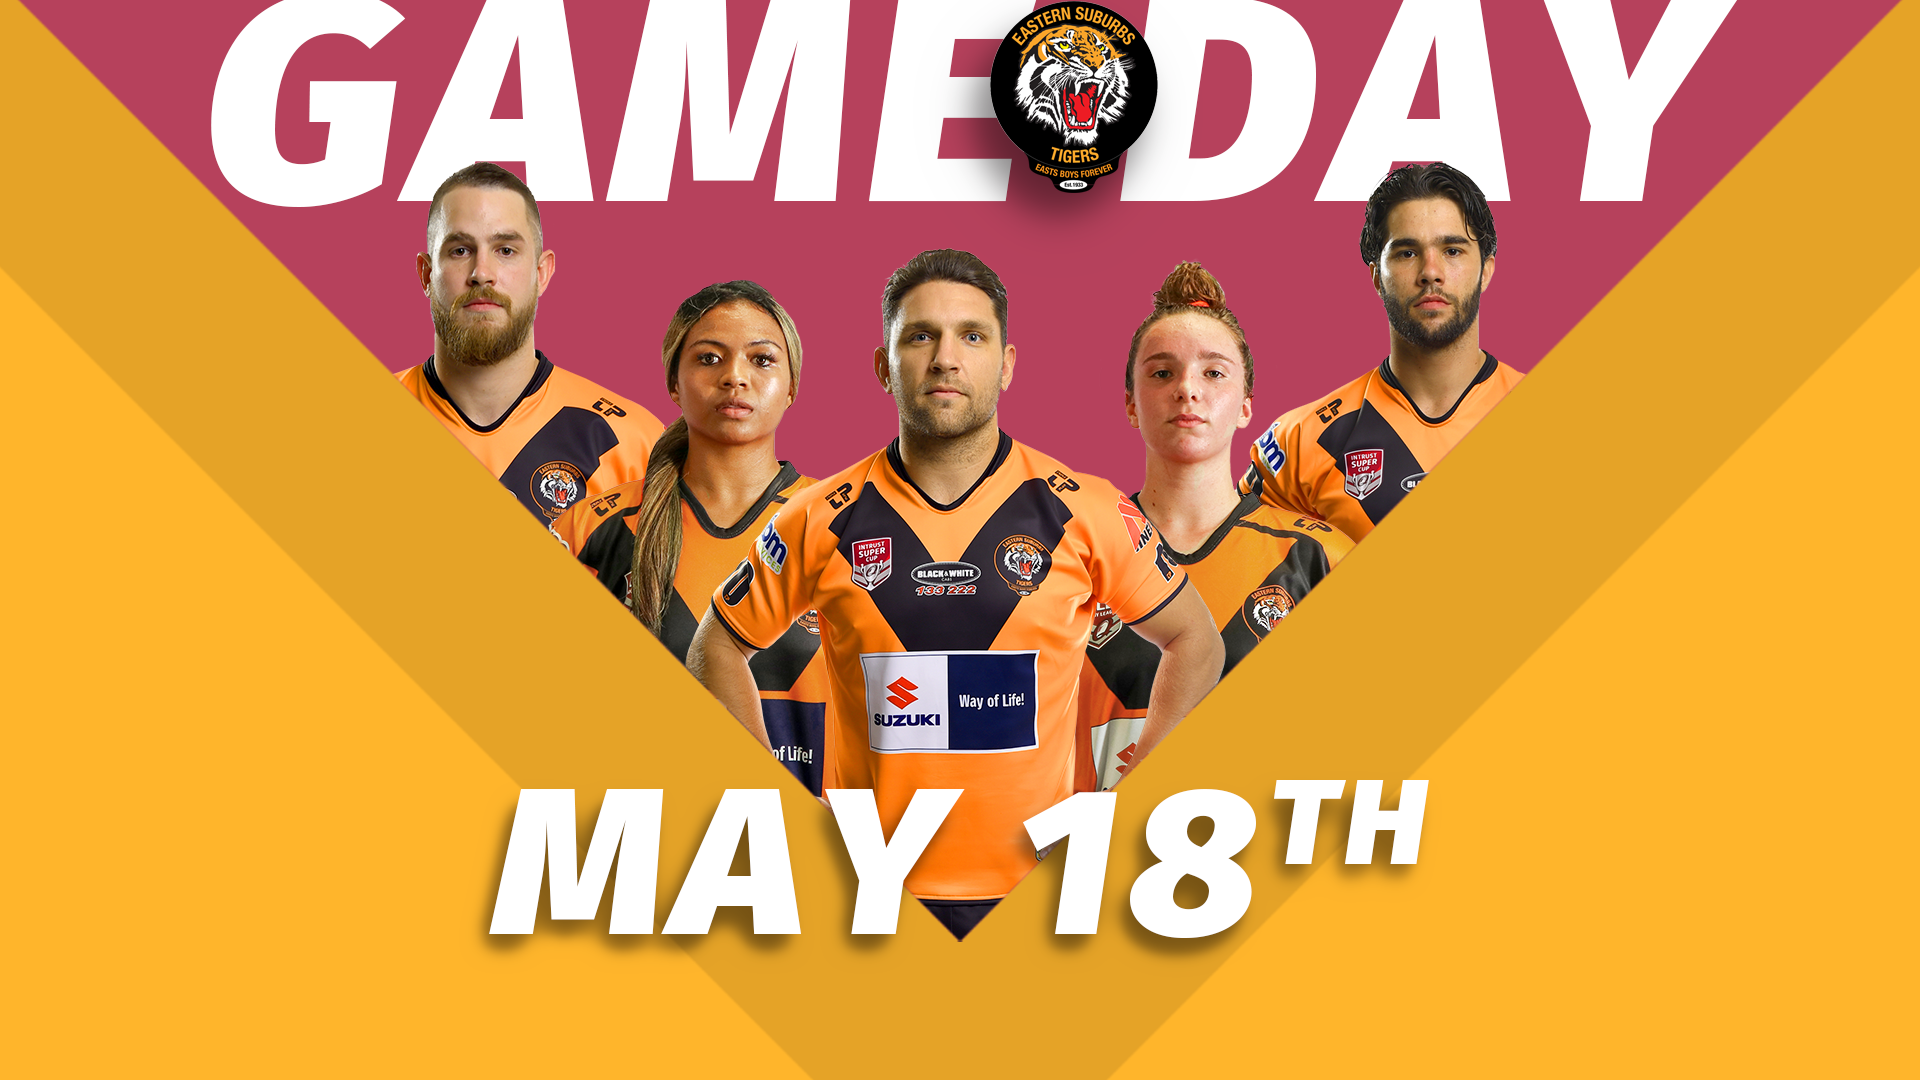 Game Day May 18th 2019